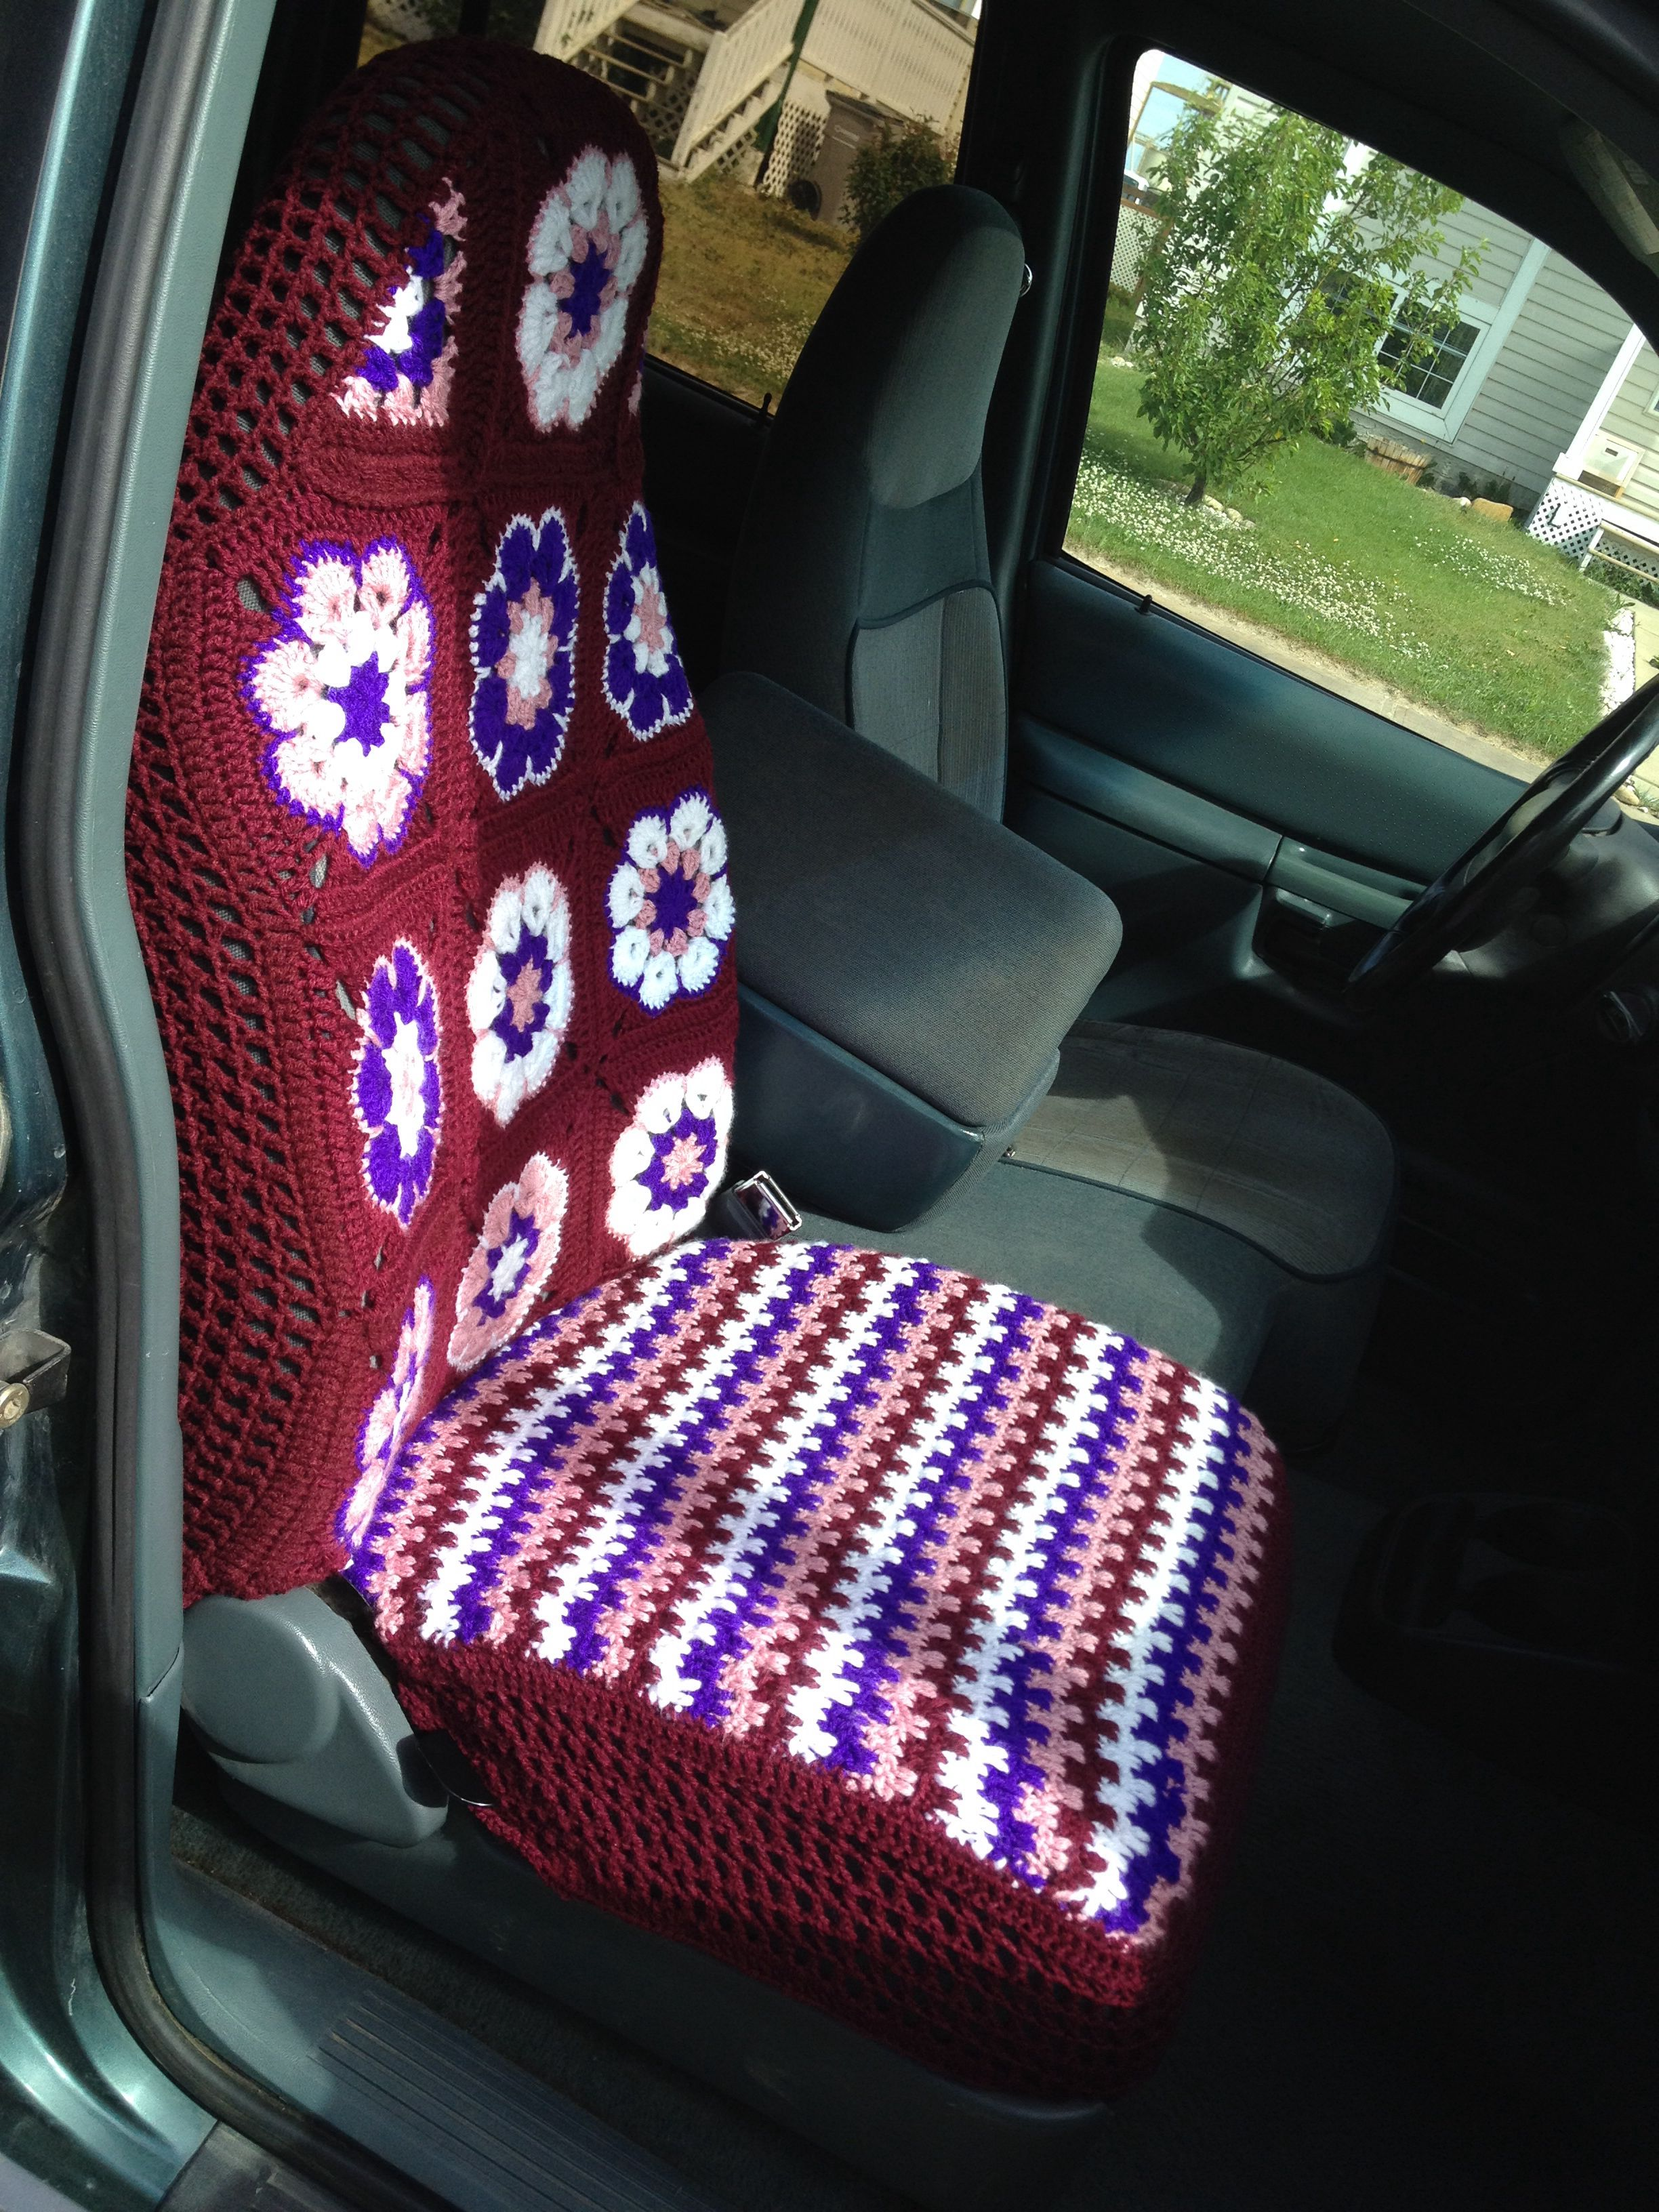 Crochet Car Seat Cover No Pattern Just Winged It Crafts Crochet